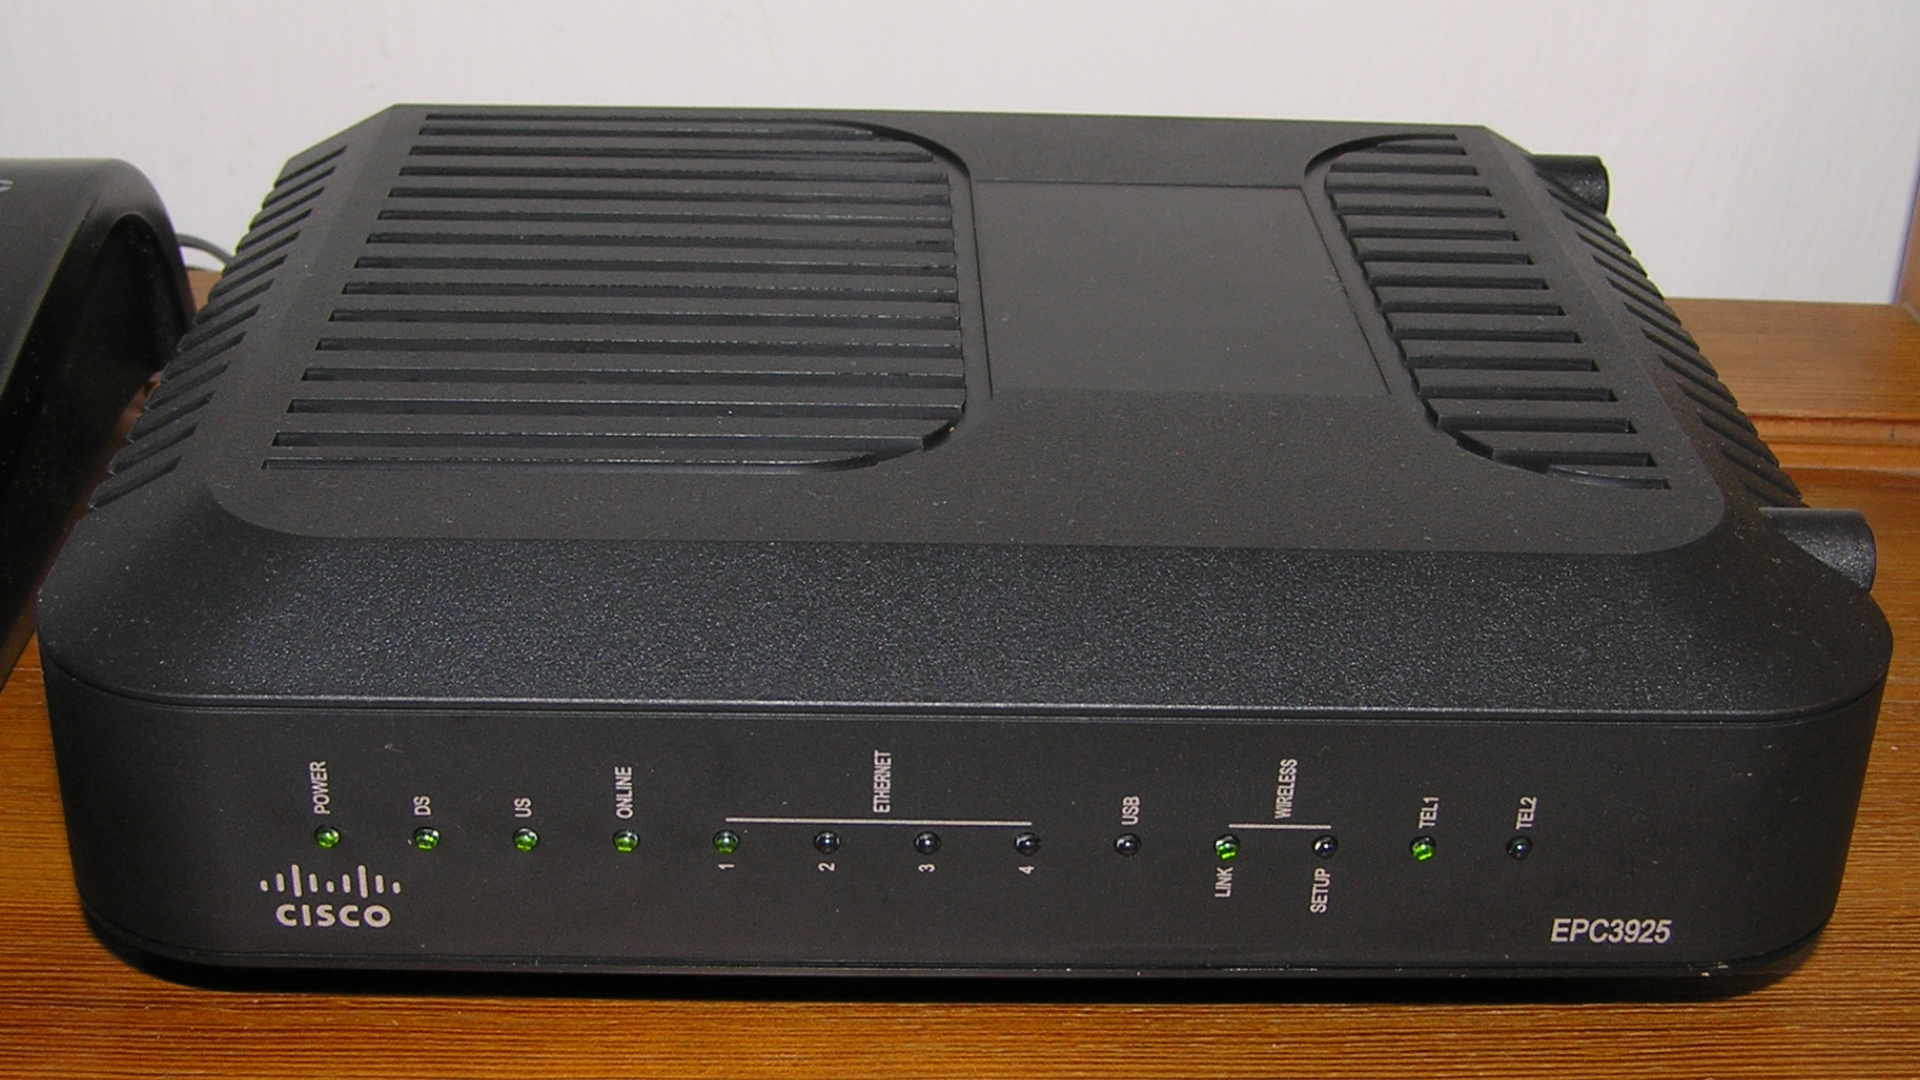 Cisco EPC3925 EuroDOCSIS 3 wireless residential gateway with embedded  digital voice adapter